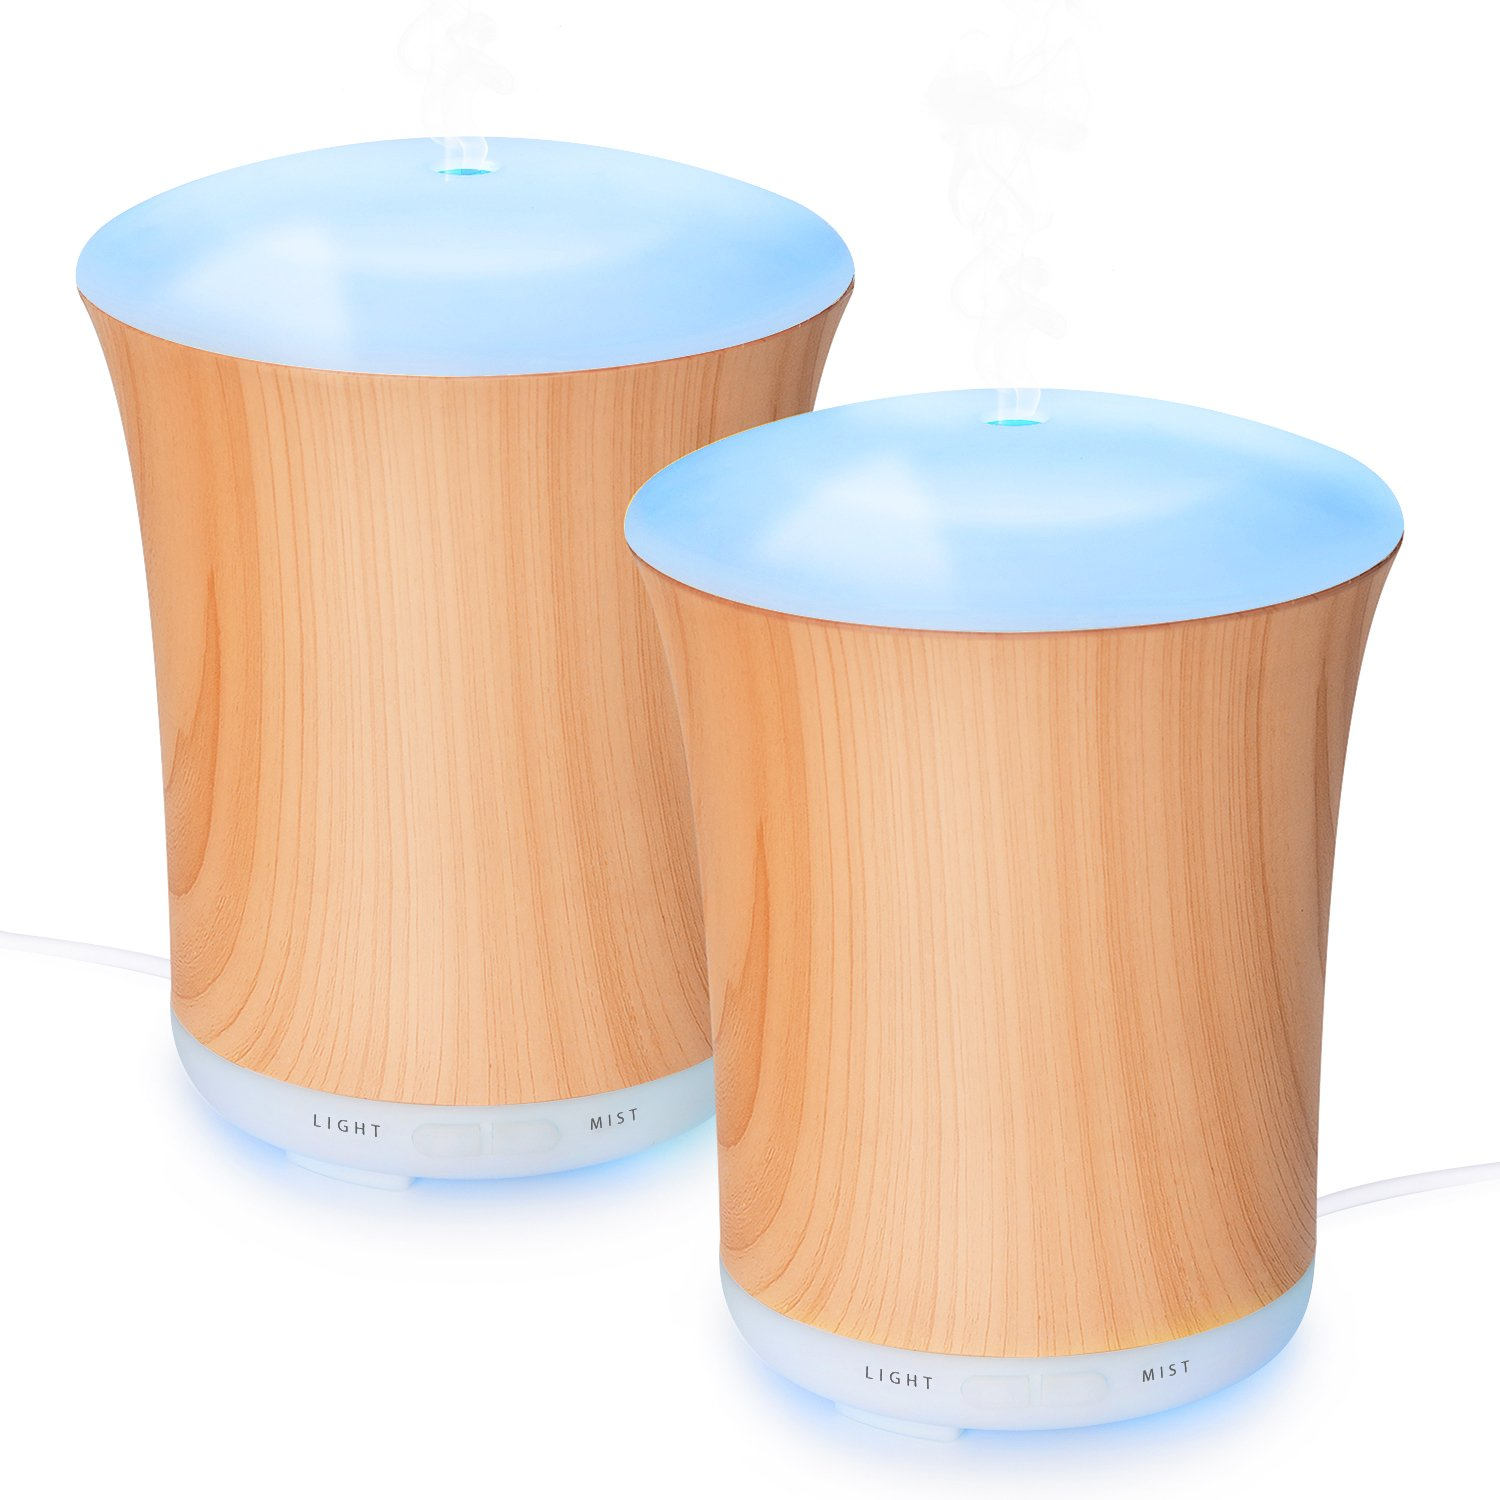 Zookki Essential Oil Diffuser, 200ml Ultrasonic Aromatherapy Diffuser Humidifier with Adjustable Mist Mode, 8 Colors LED Lights Changeable and Waterle (wood grain 2 pack) …